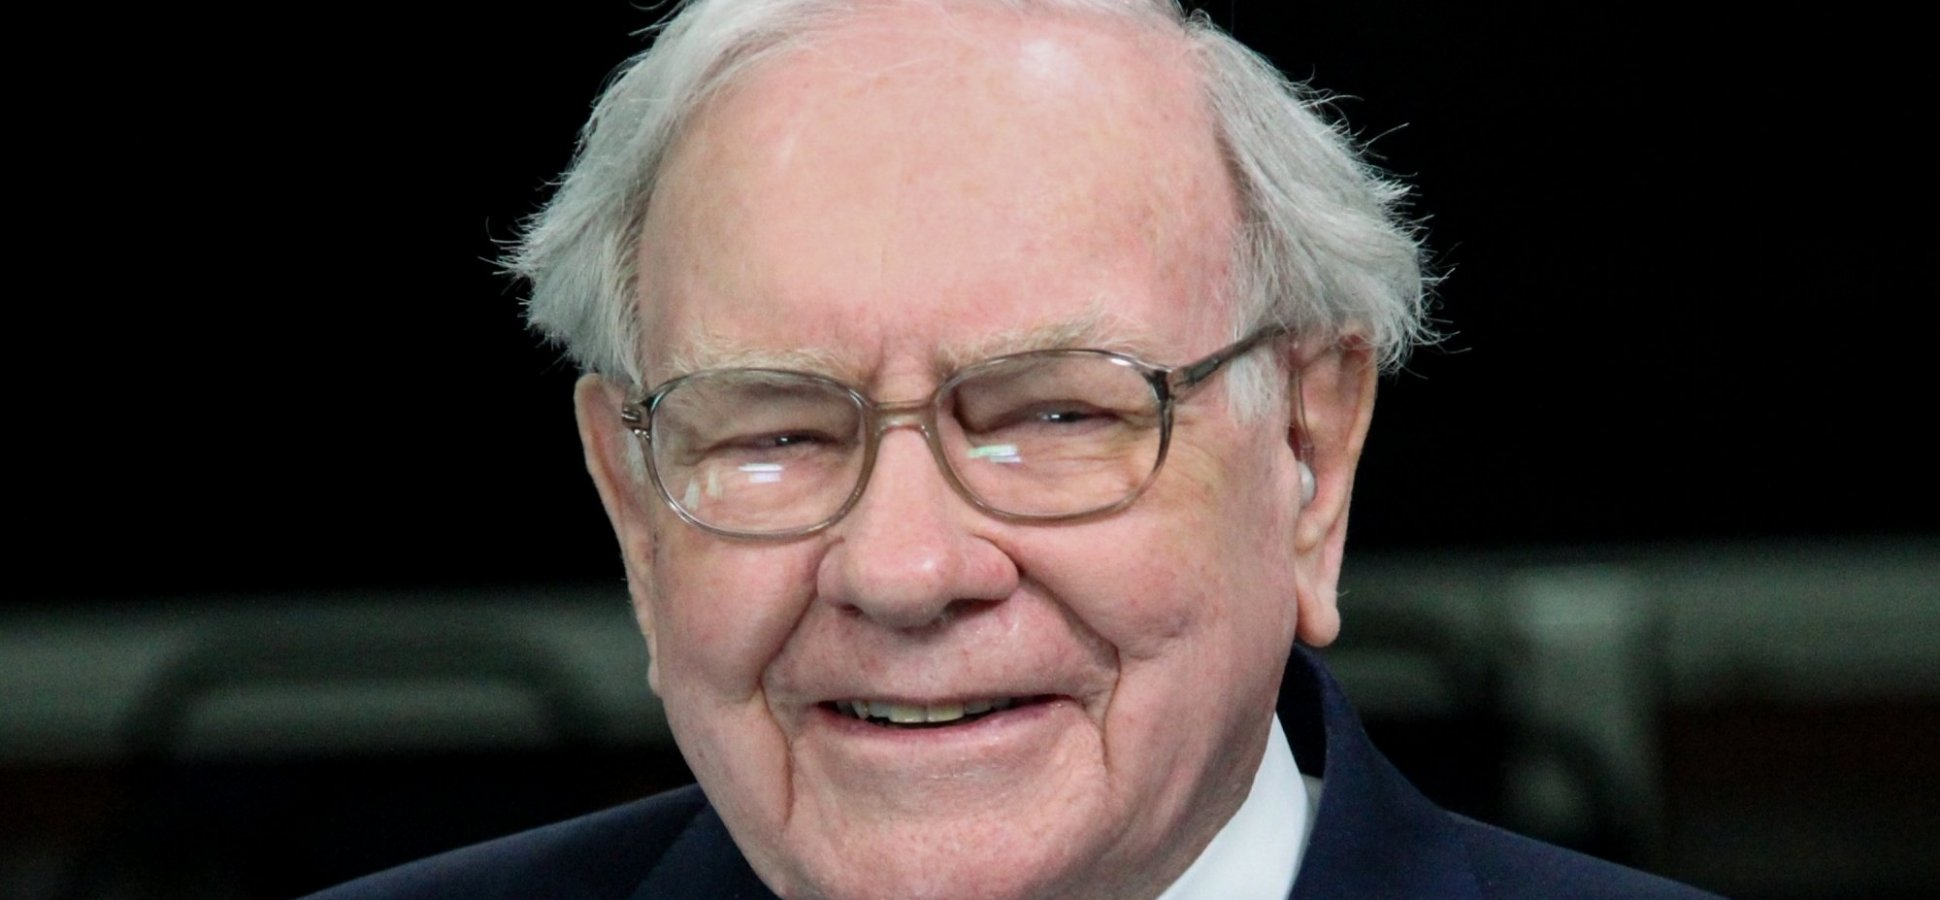 Warren Buffett Shared the Best Advice He Ever Got for Living a Happy Life in 10 Brilliant Words